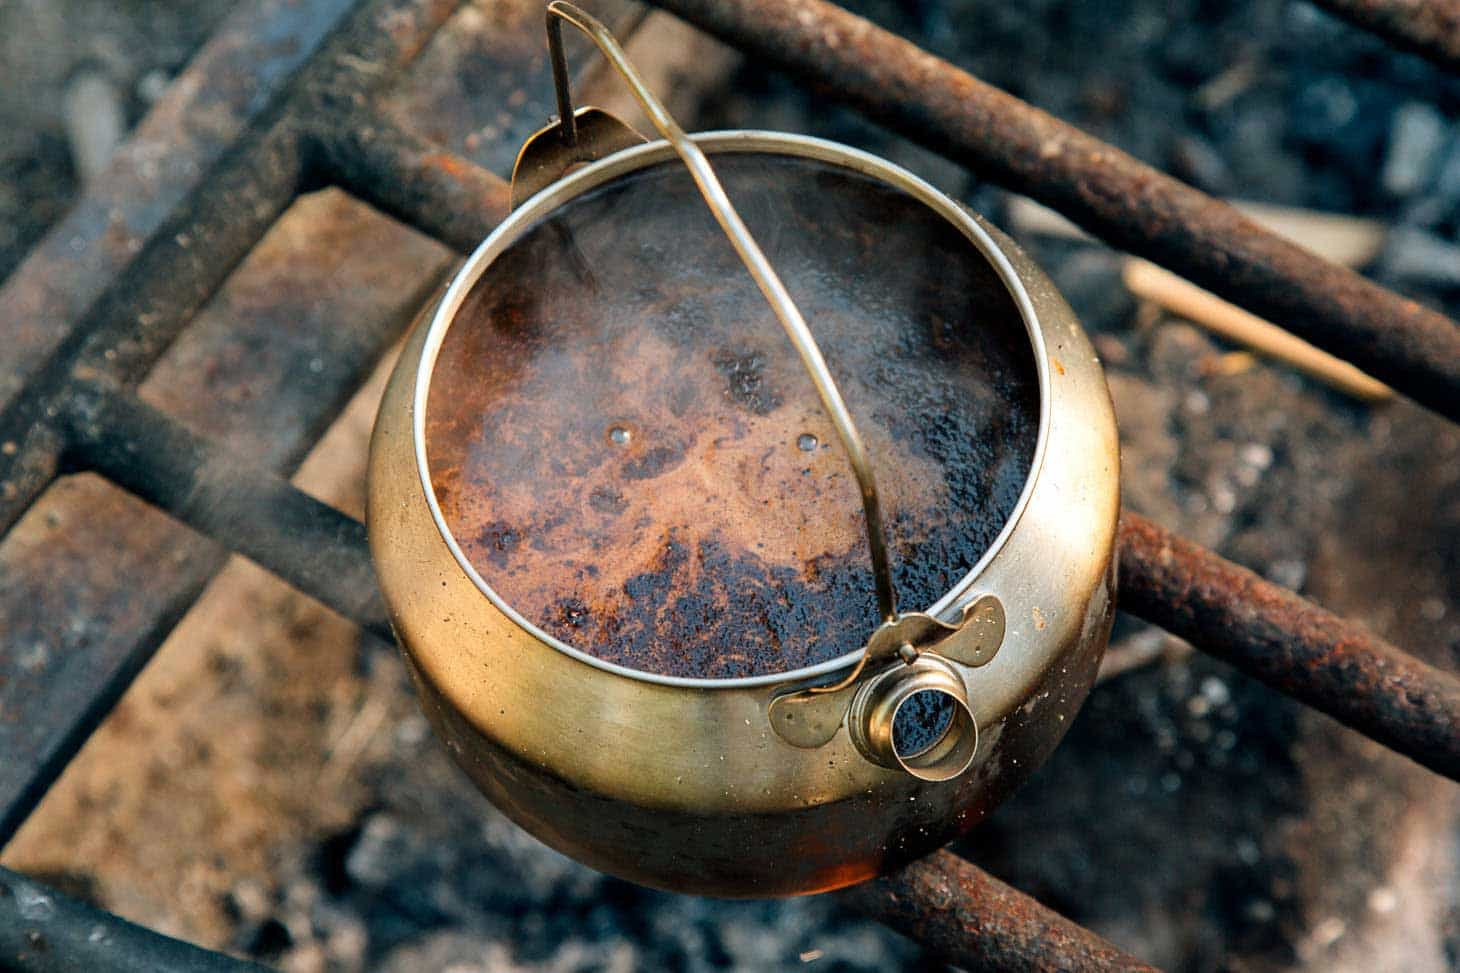 Coffee While Camping - How to Make Cowboy Coffee